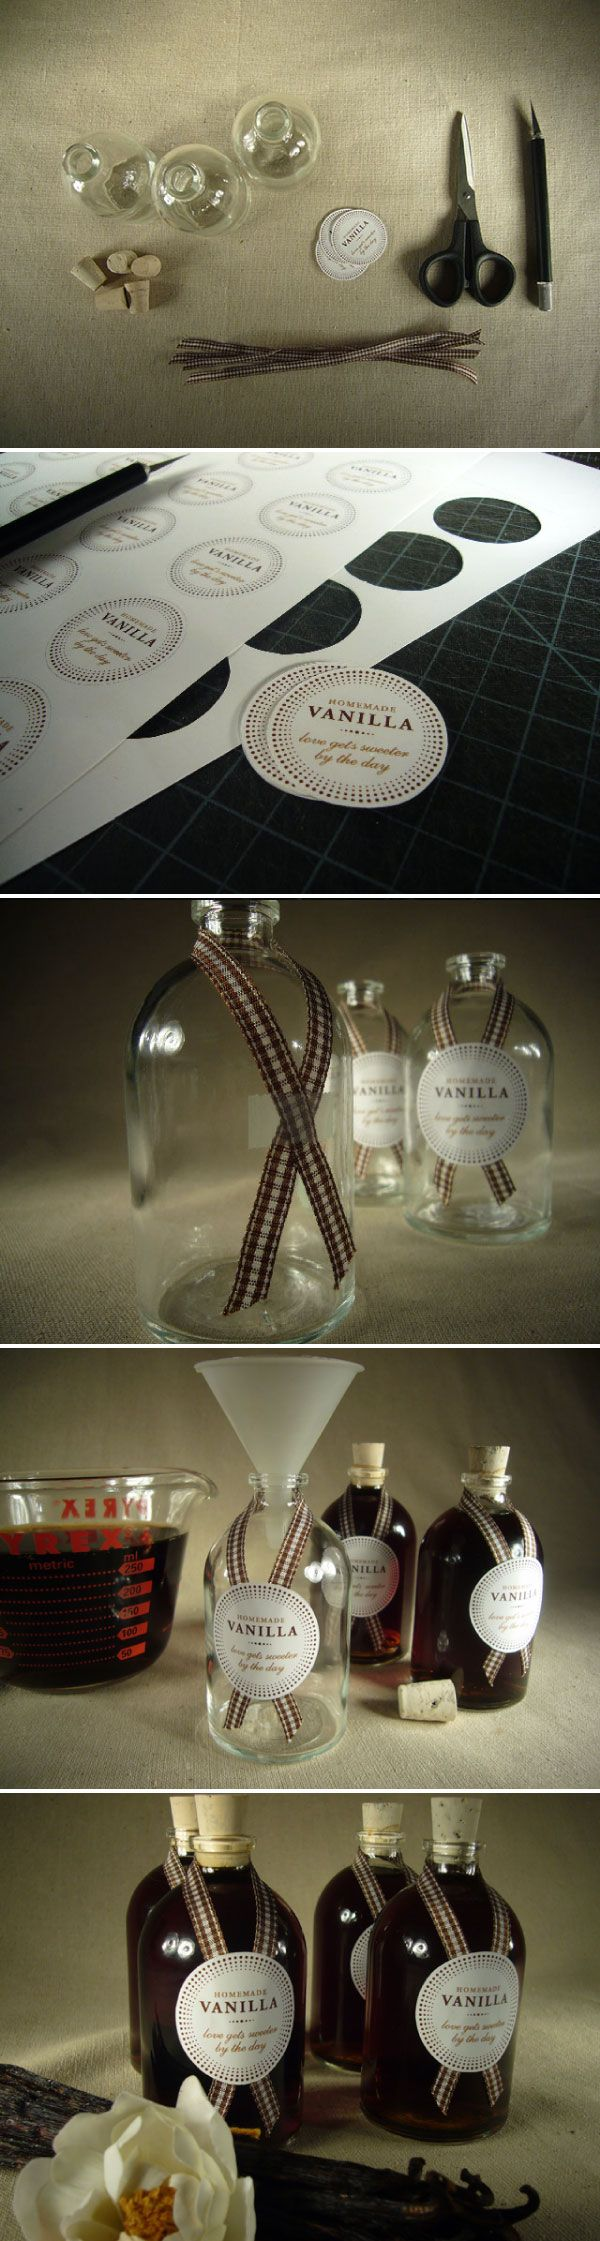 DIY vanilla. I want to try this